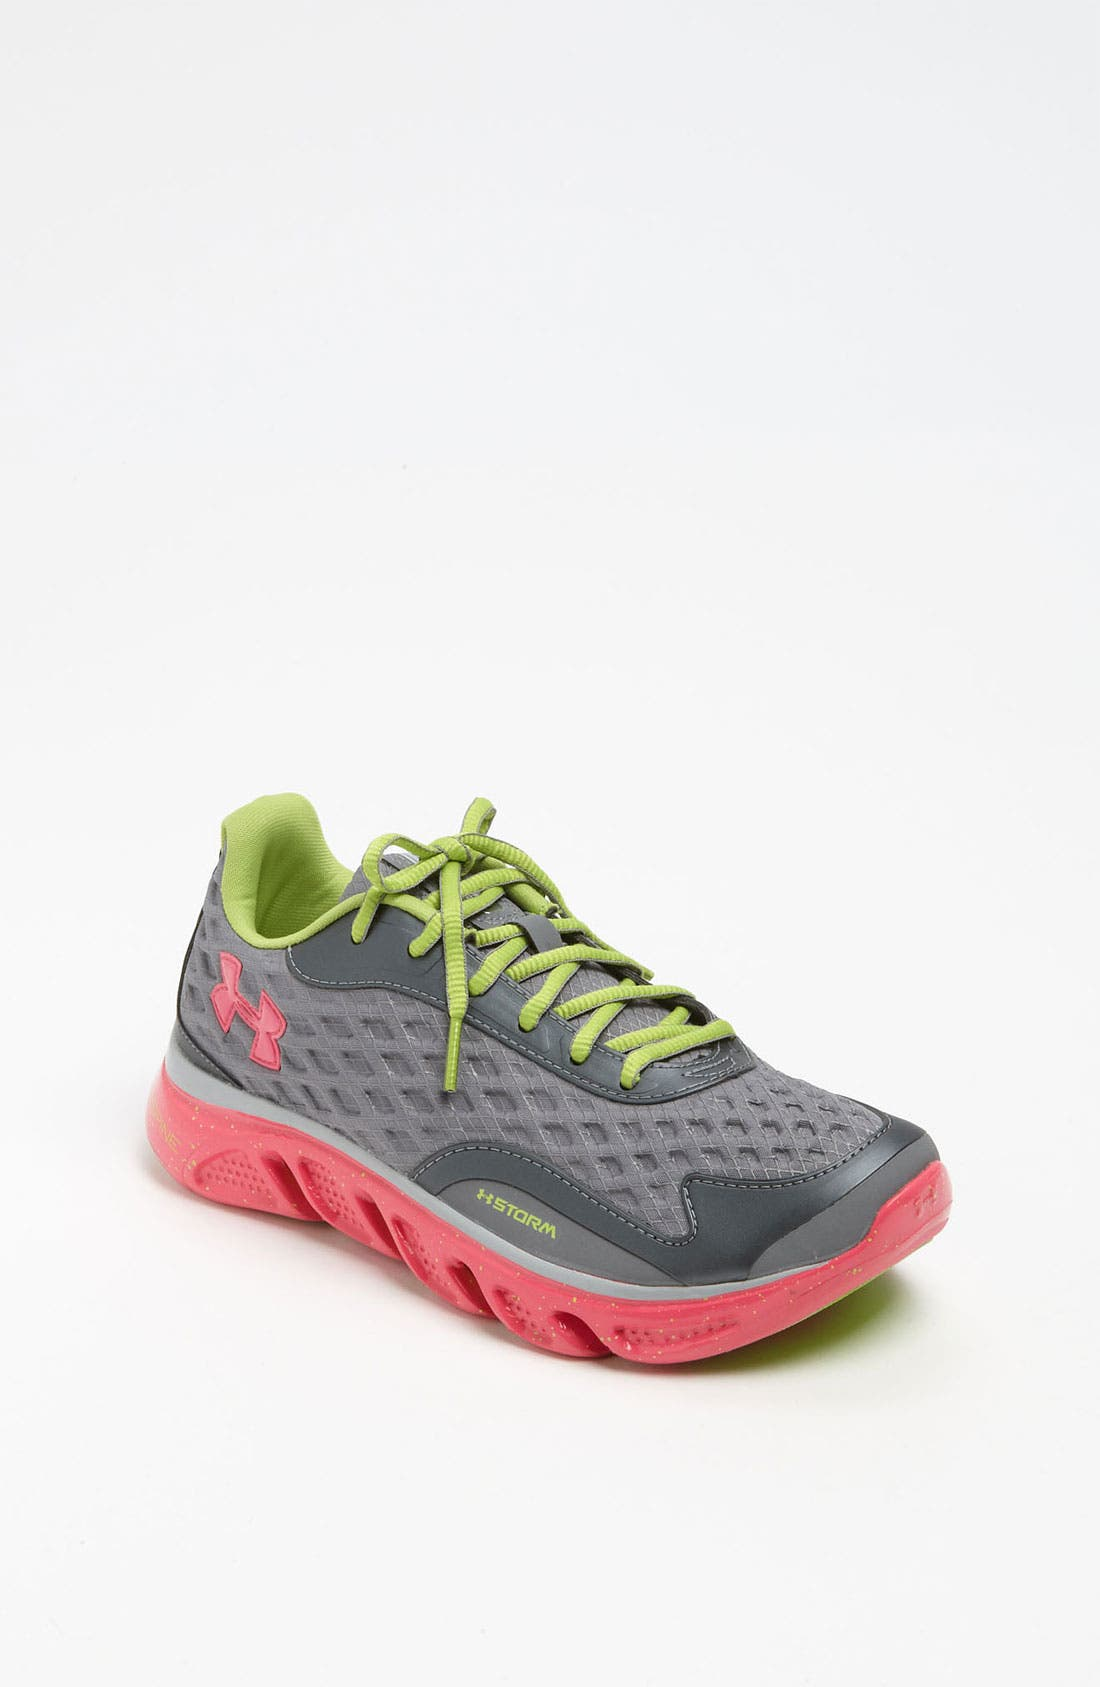 Main Image - Under Armour 'GGS Spine RPM Storm' Sneaker (Big Kid)